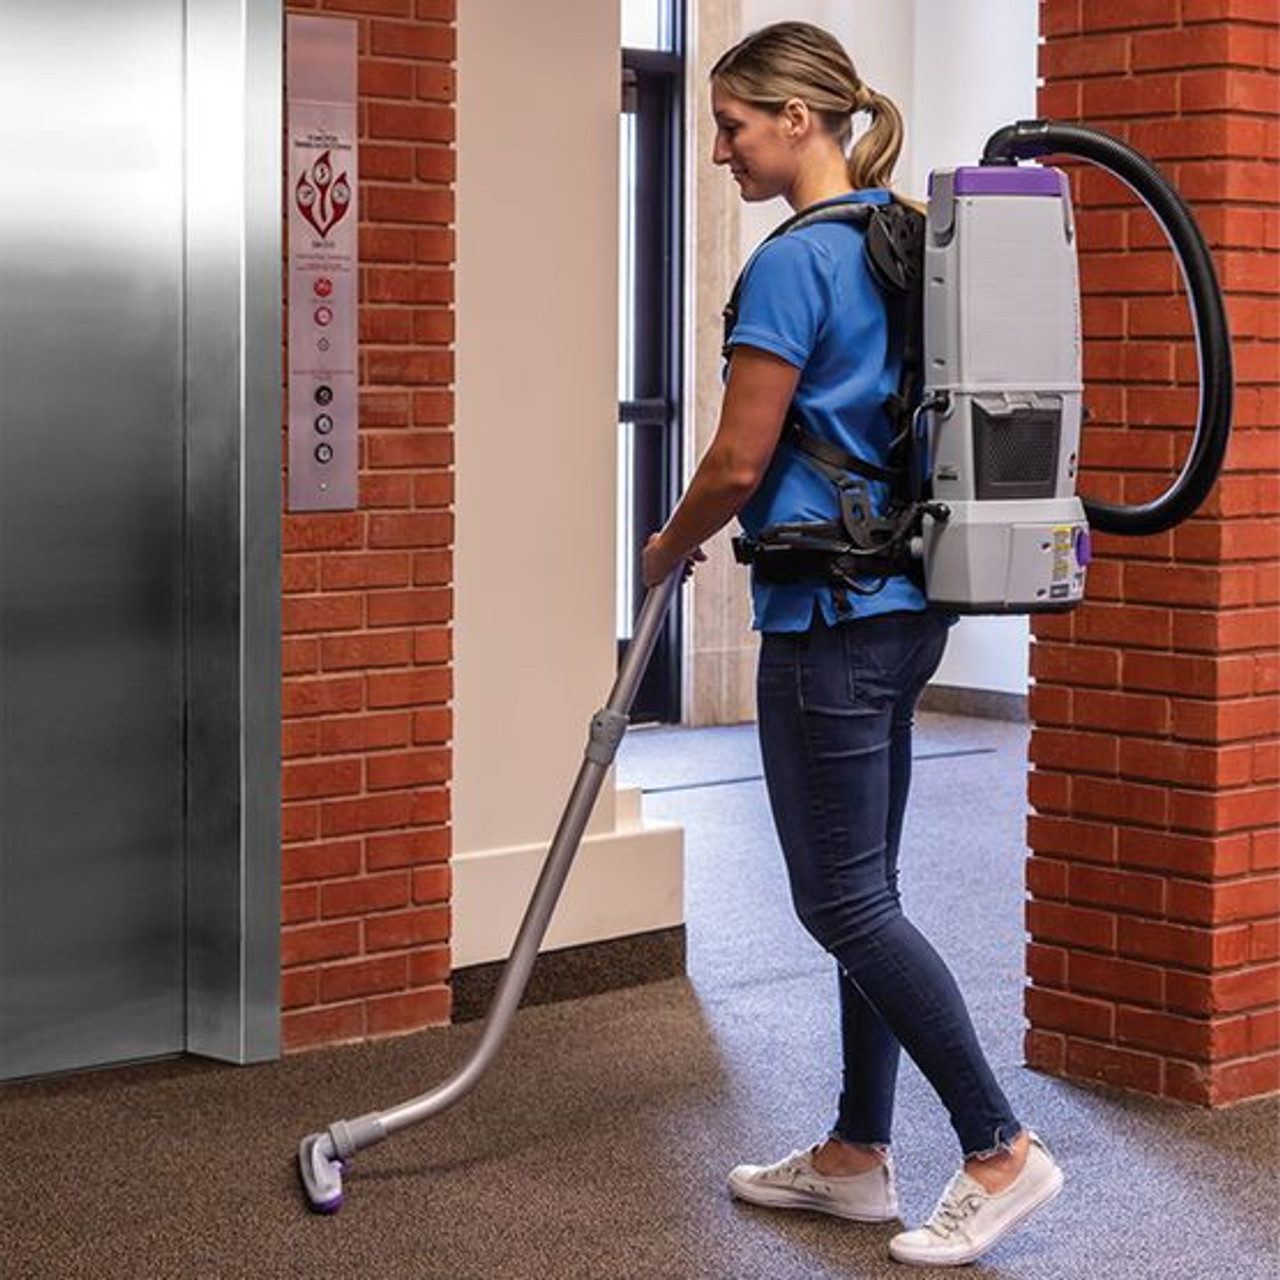 ProTeam GoFree Flex Pro II, 6 Ah, 6 qt. Cordless Backpack Vacuum w/ Xover Multi-Surface Two-Piece Wand Tool Kit